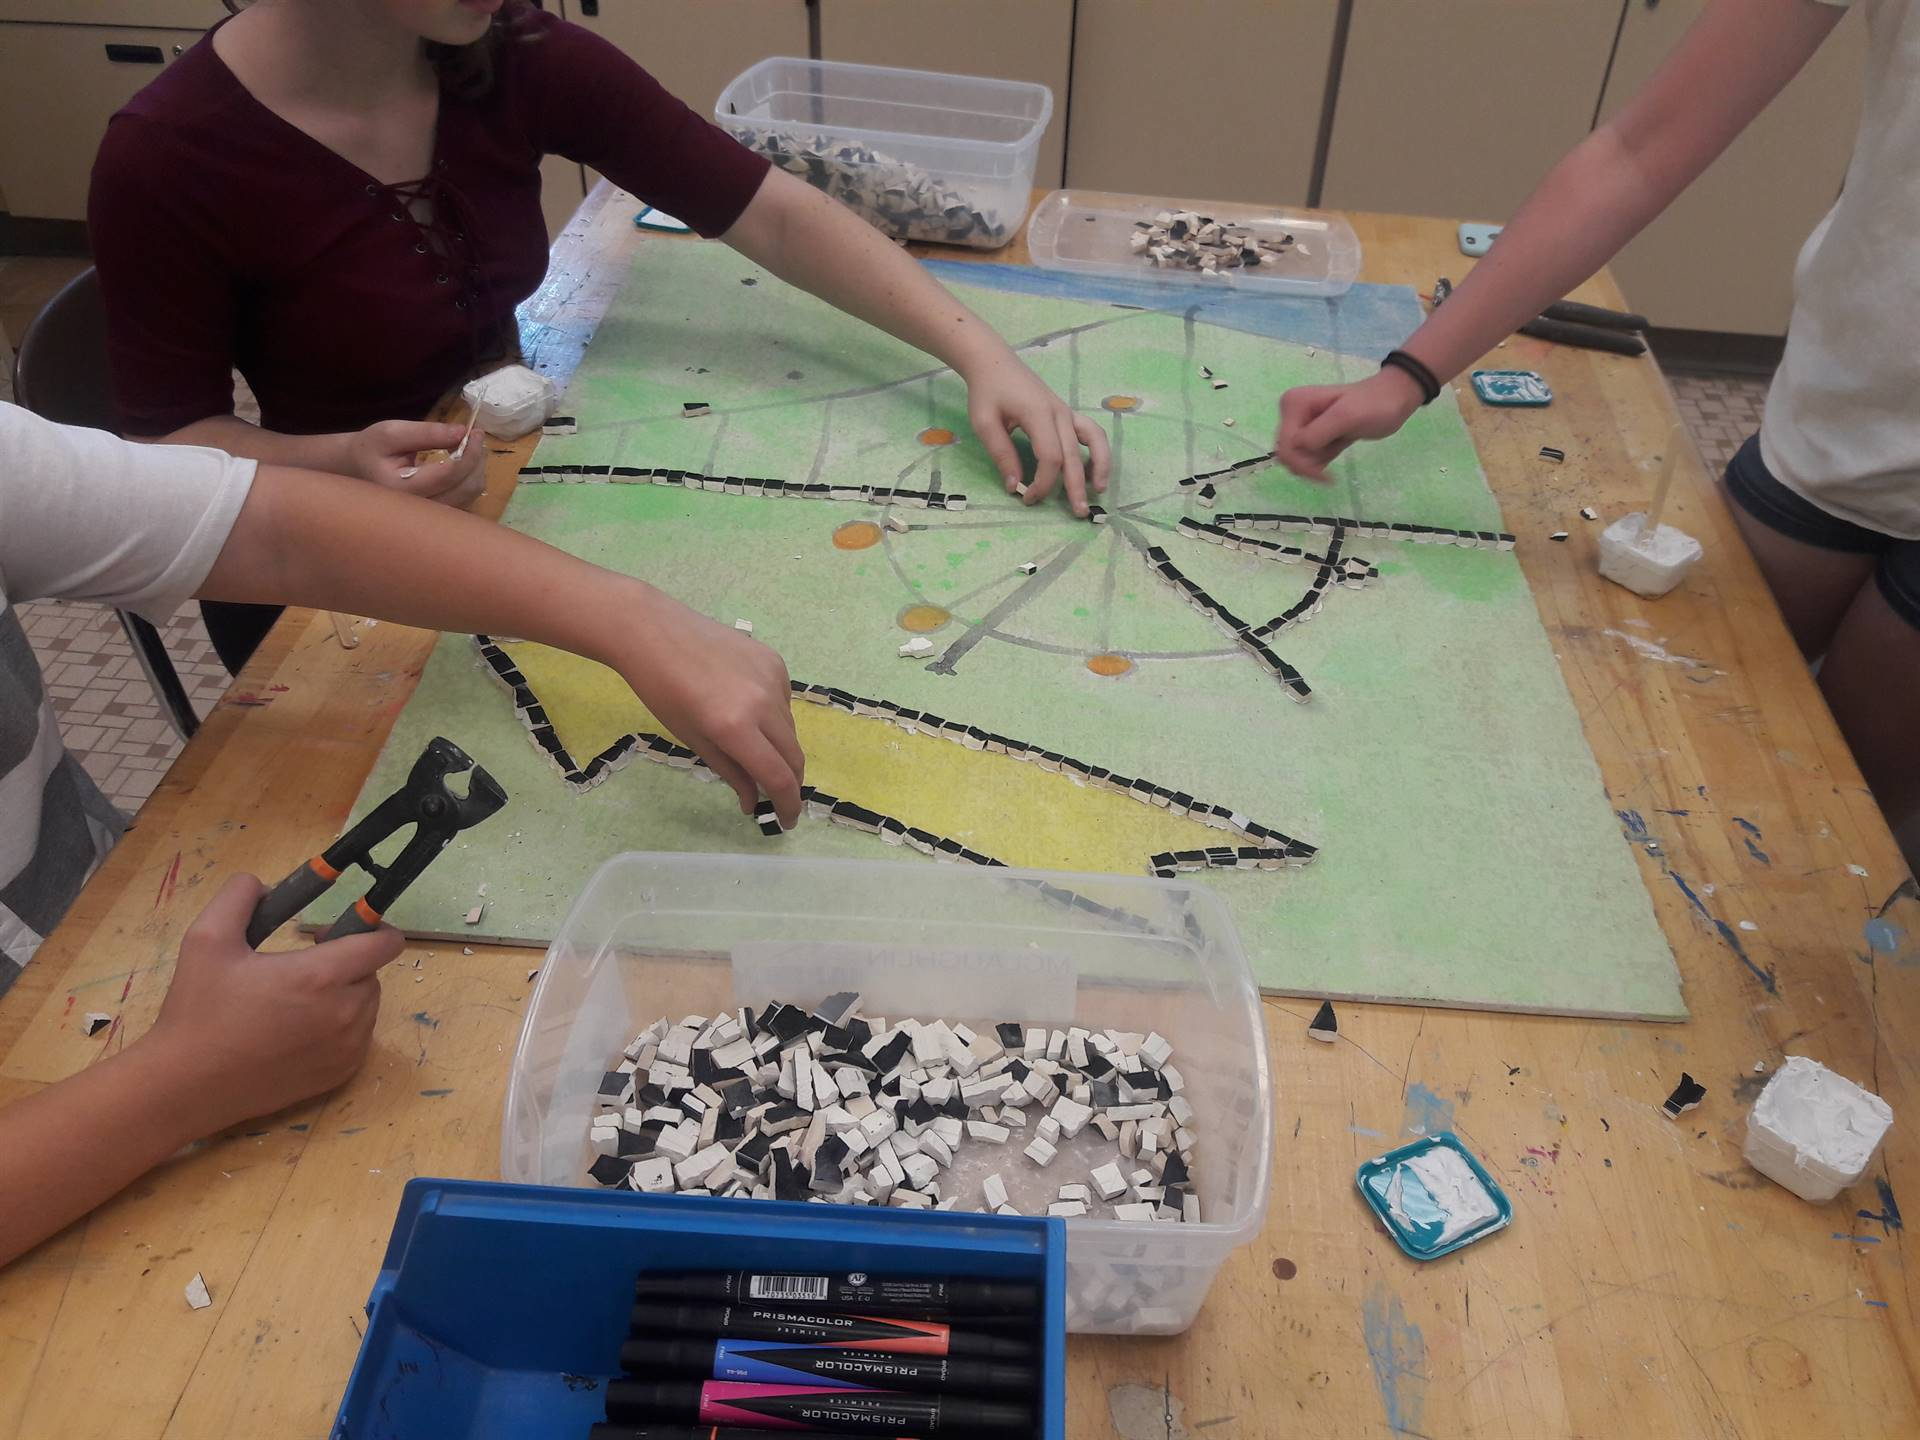 Students are outlining the Mosiac with black tile